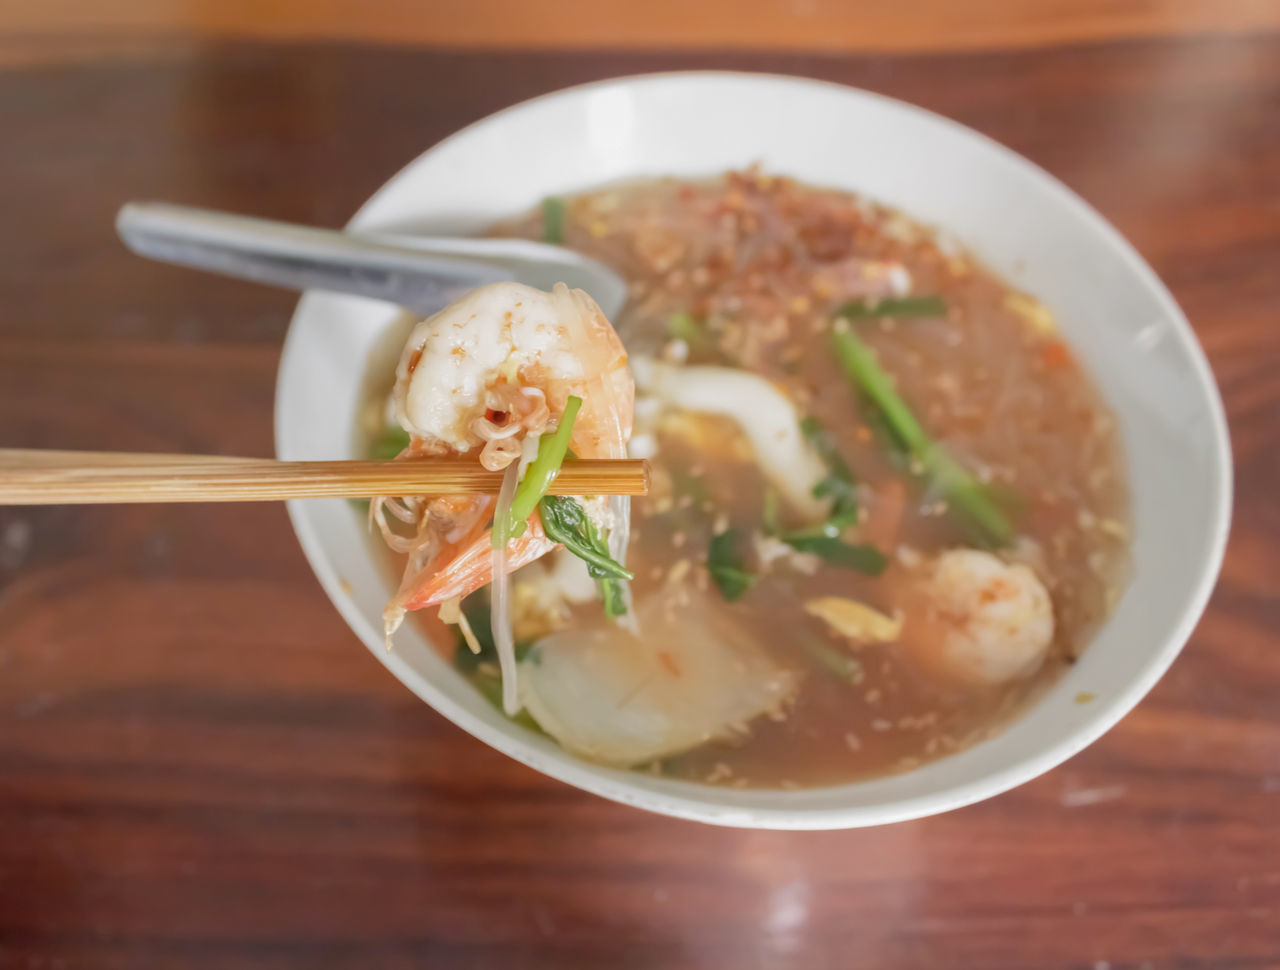 food and drink, bowl, food, table, freshness, healthy eating, soup, noodles, ready-to-eat, indoors, chopsticks, high angle view, no people, serving size, close-up, day